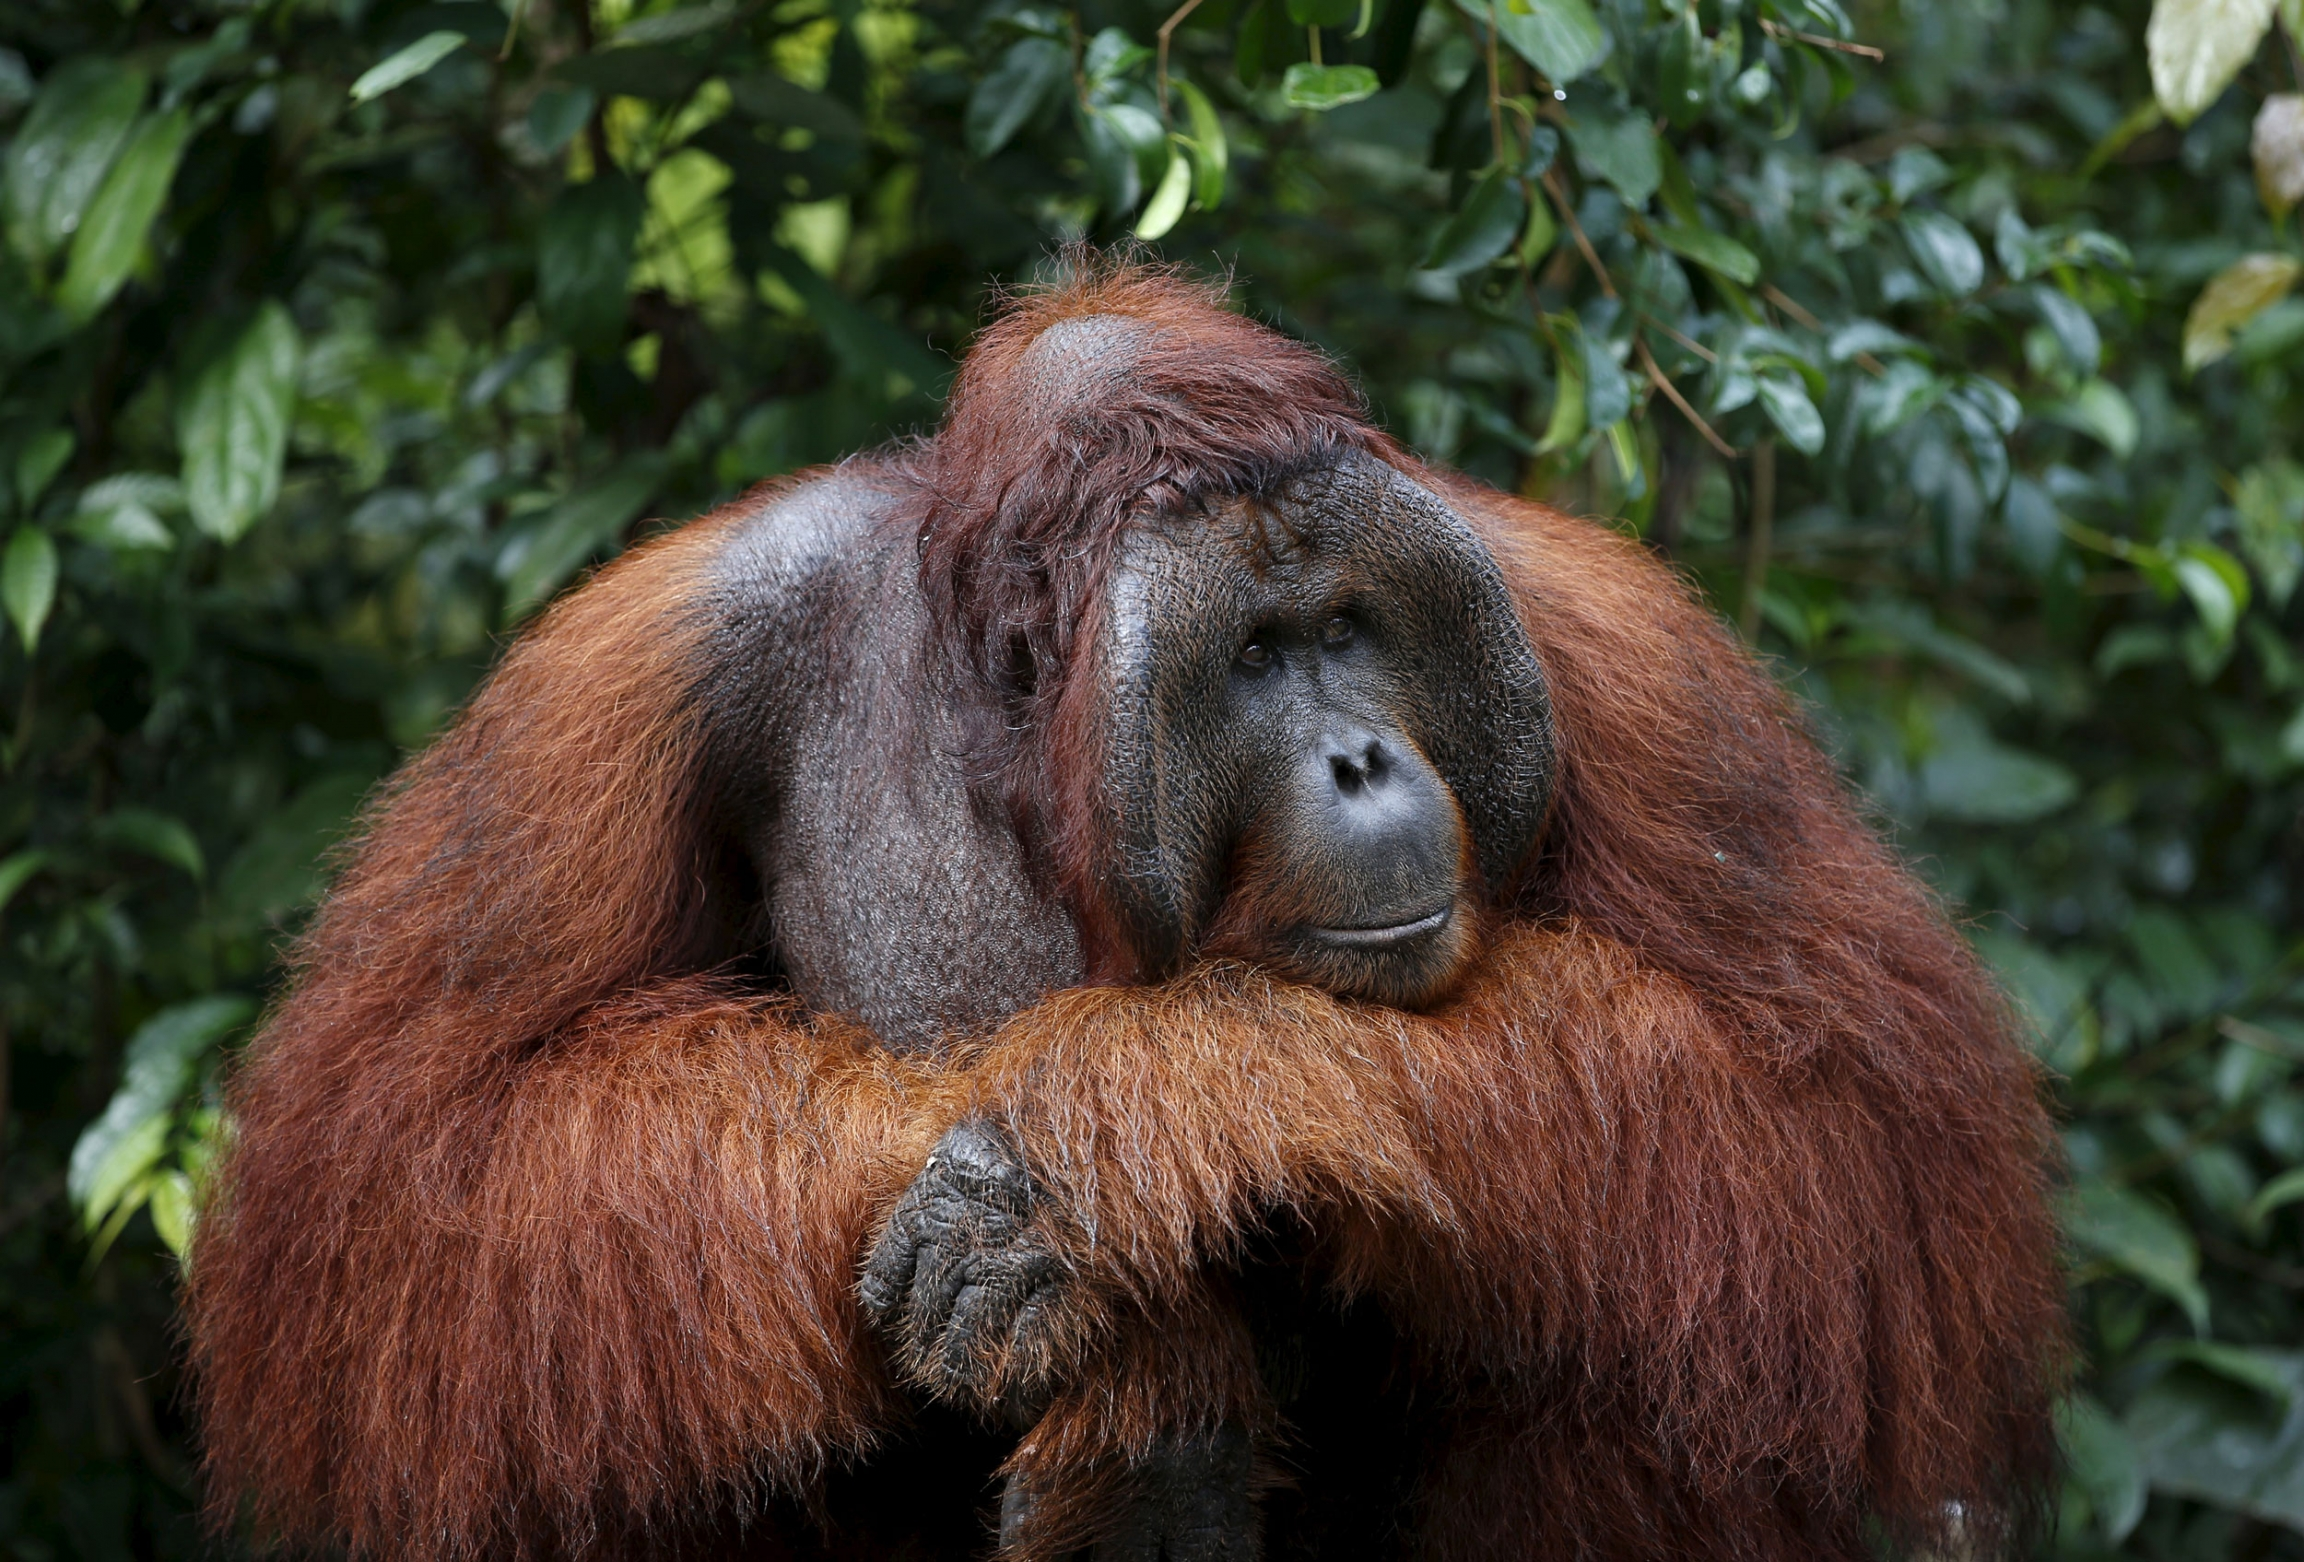 A male orangutan waits at a feeding station at Camp Leakey in Tanjung Puting National Park in Central Kalimantan province, Indonesia.